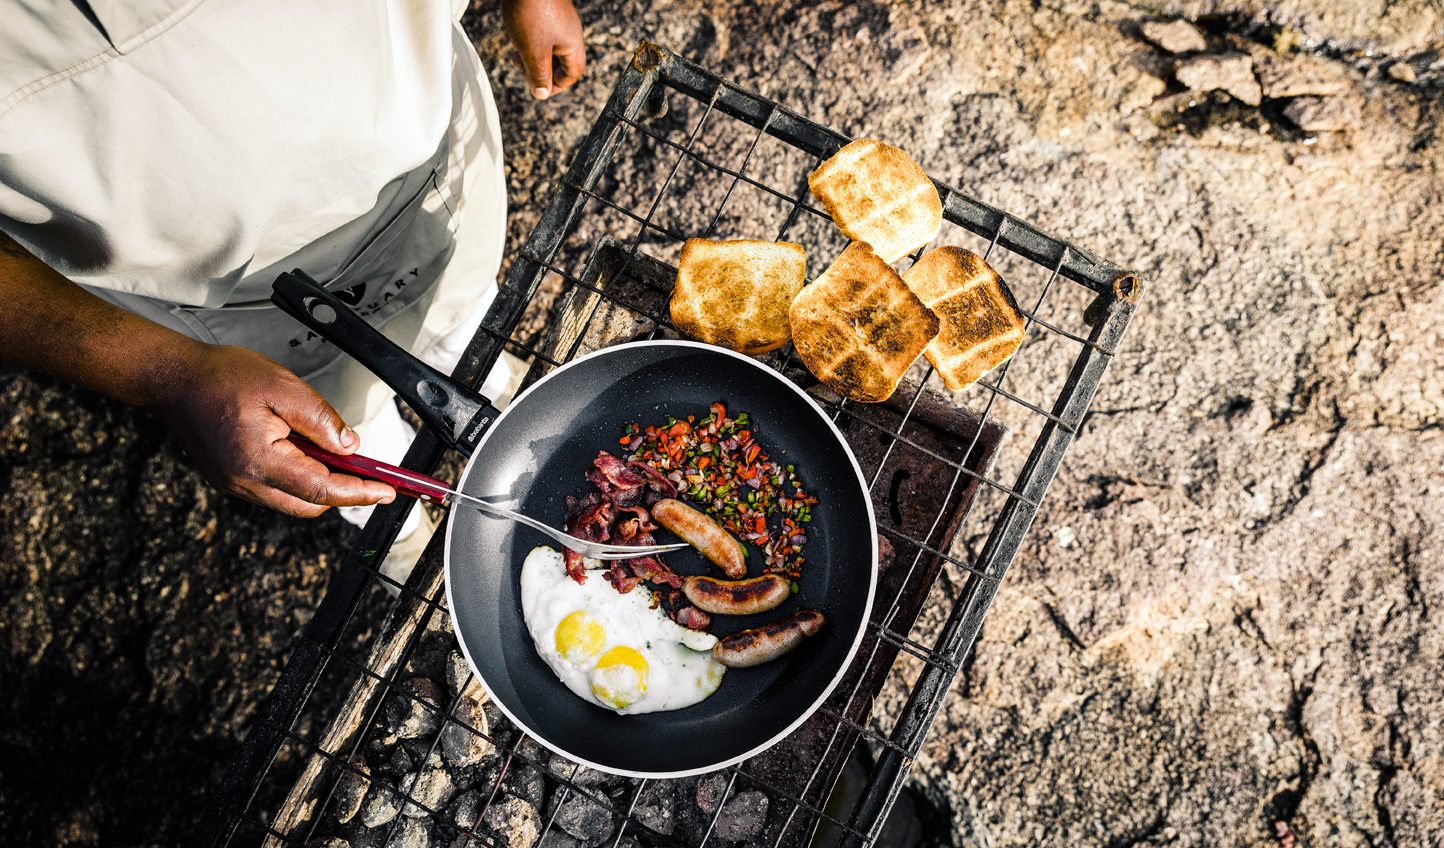 Take a walk on the wild side and tuck into a bush breakfast